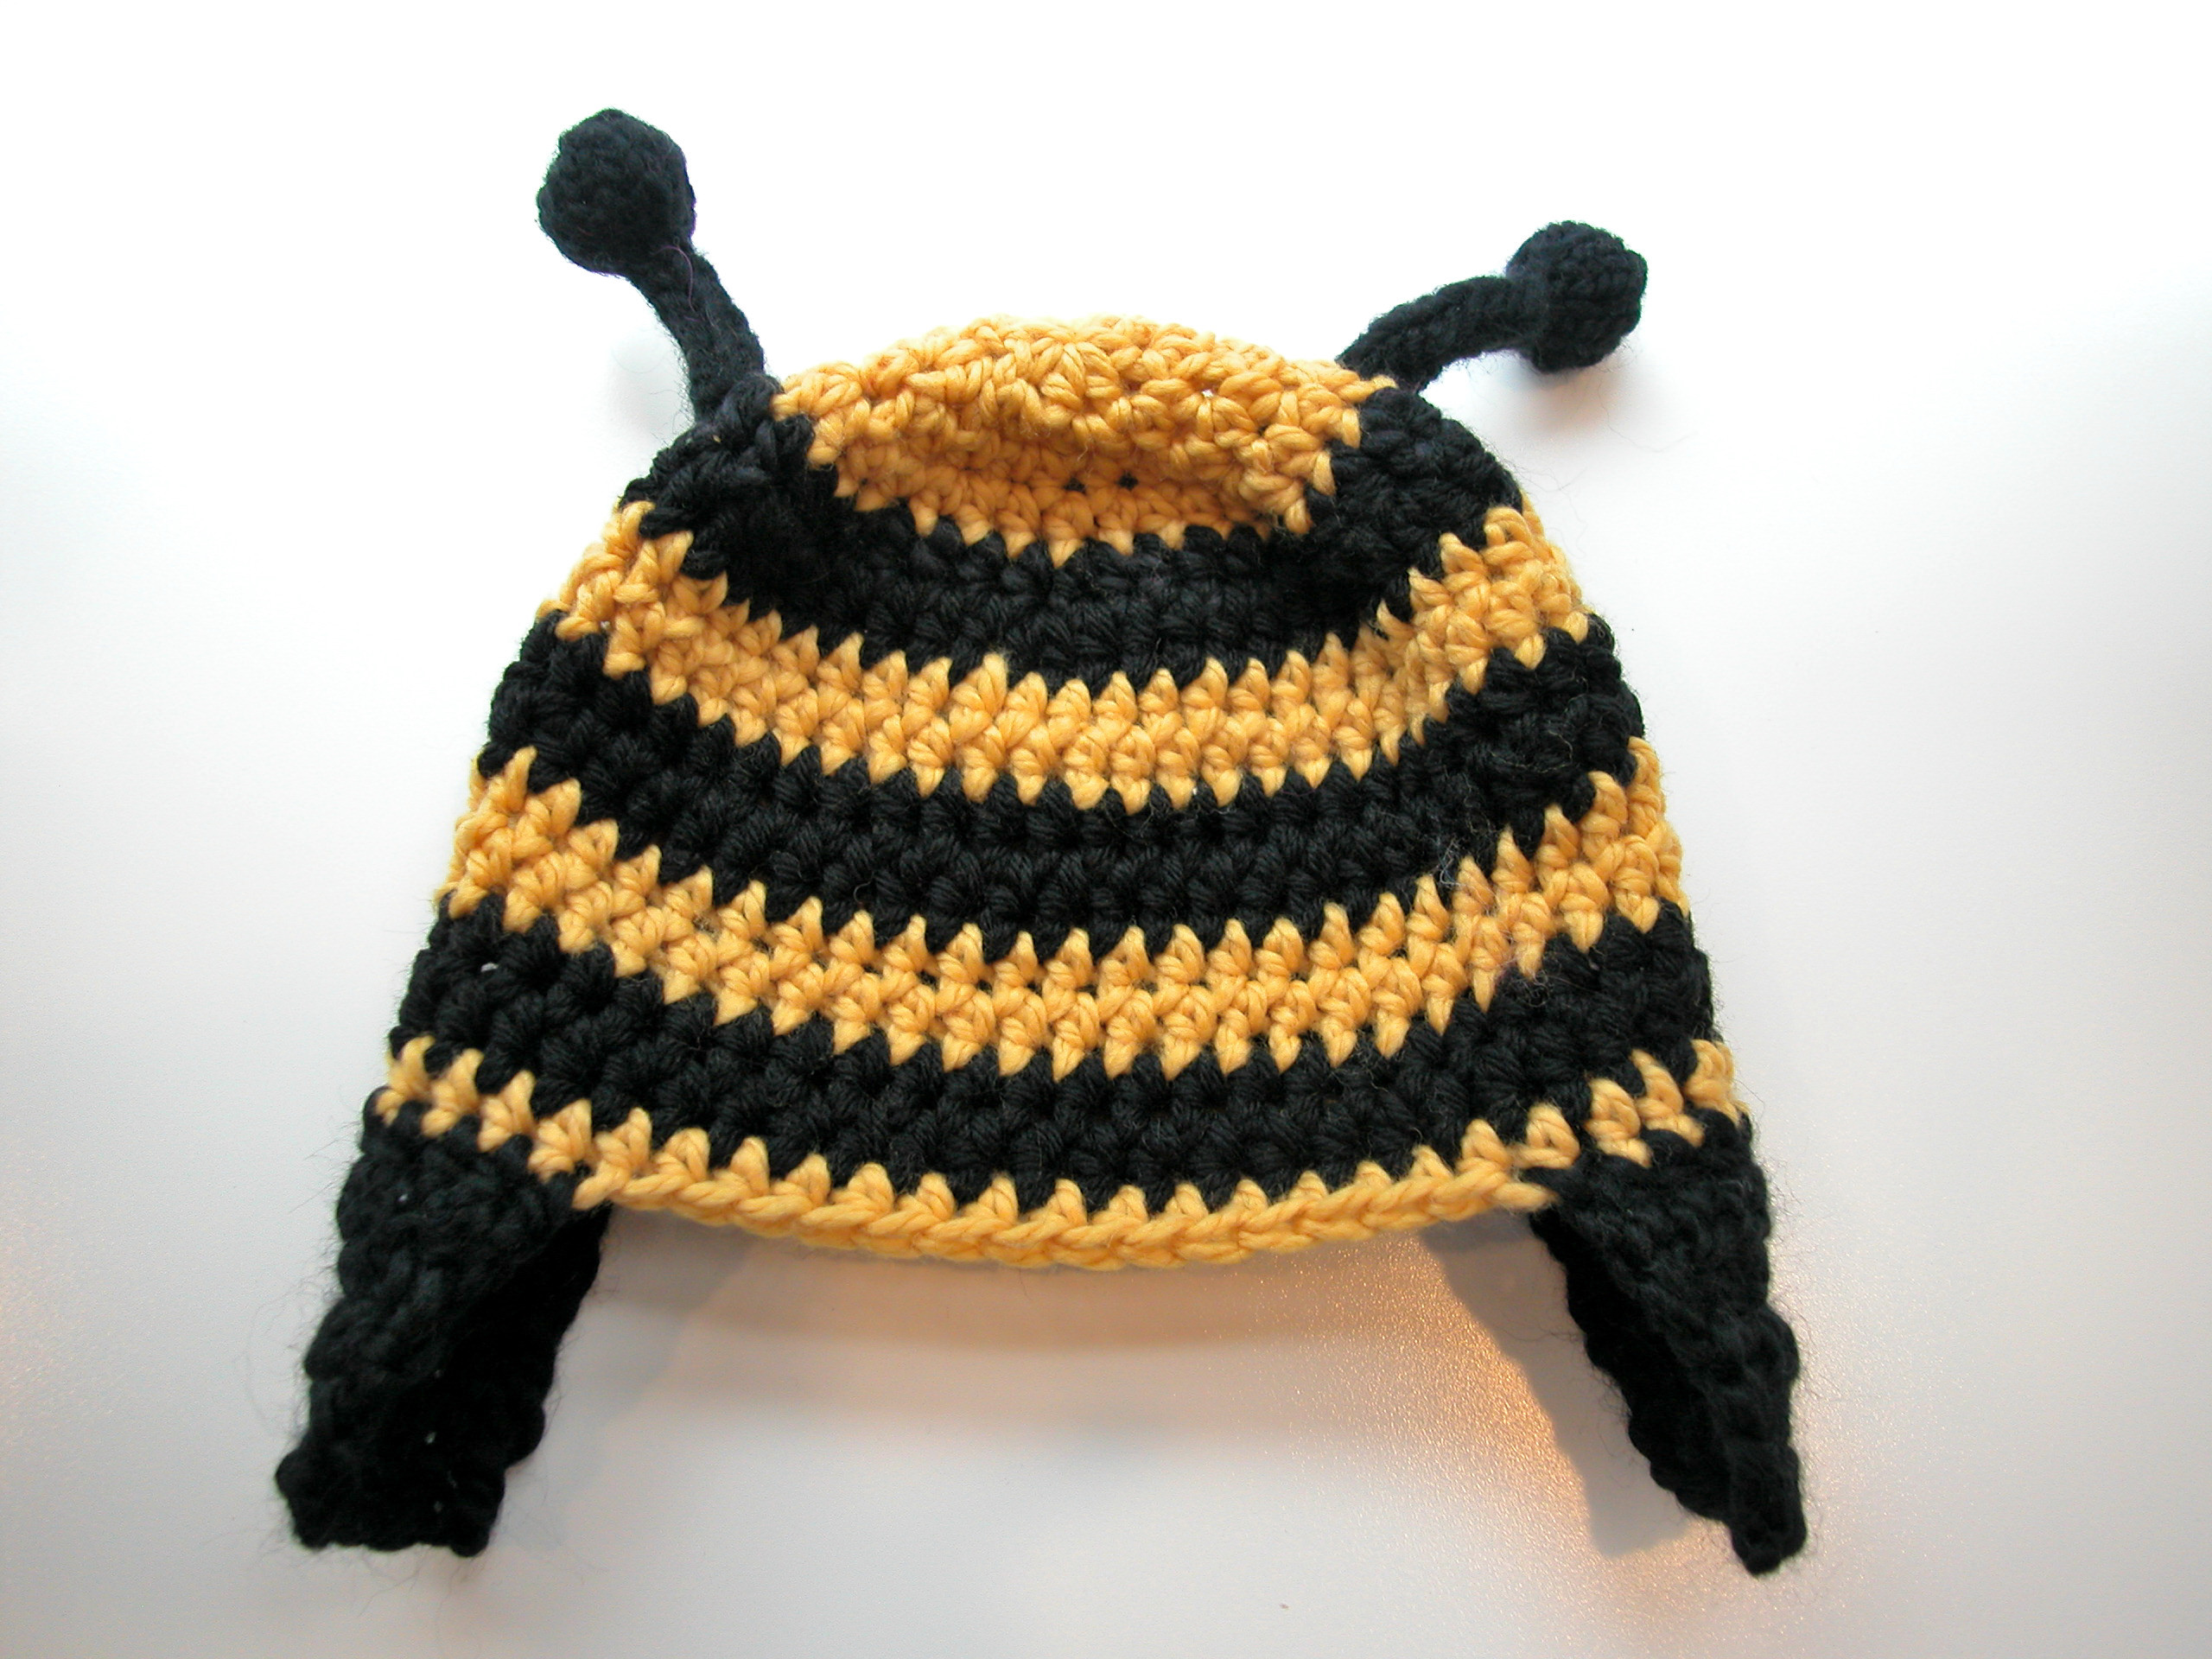 Bumble Bee Crochet Hat The Knit Cafe